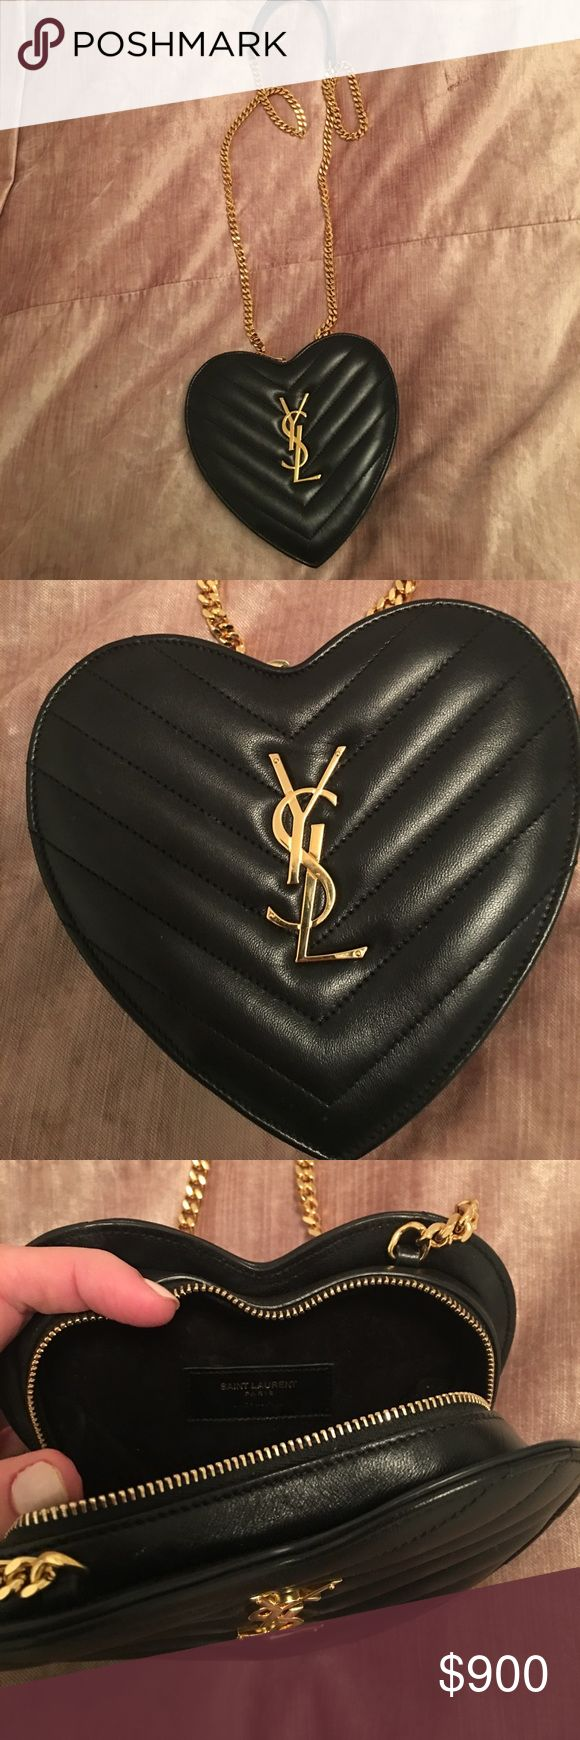 YSL Saint Laurent Love Heart Chain Bag in Black YSL heart-shaped bag with fixed leather and gold metal chain shoulder strap. 6.4 x 6.4 x 1.8 inches. In great condition with YSL dust bag. Barely used. Sold out online. Saint Laurent Bags Shoulder Bags